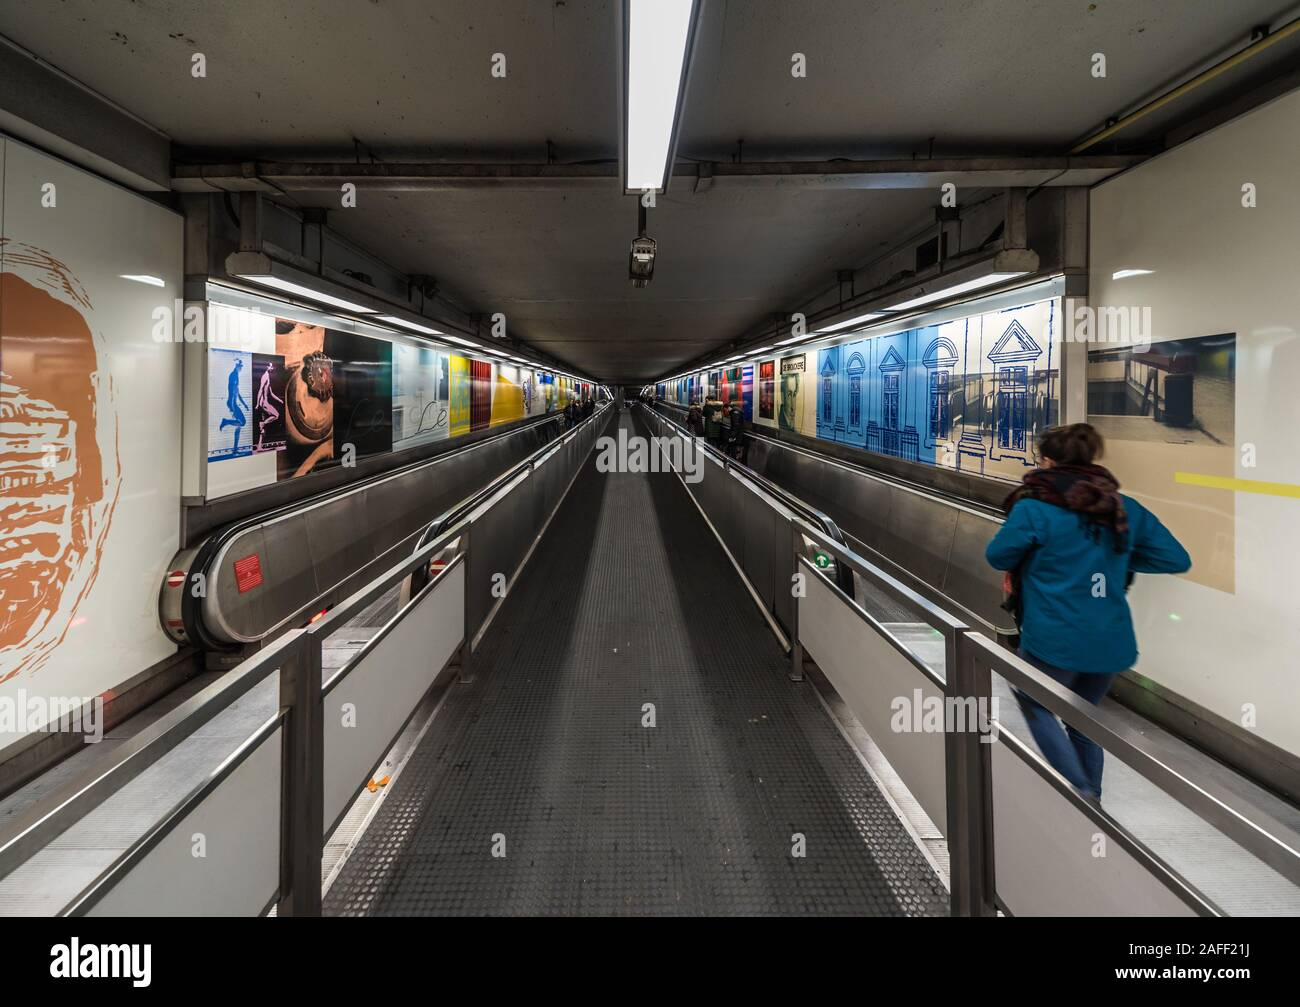 Brussels Old Town, Brussels Capital Region / Belgium - 12 06 2019: Interio of the De Brouckère public transportation metro and tramway hub Stock Photo